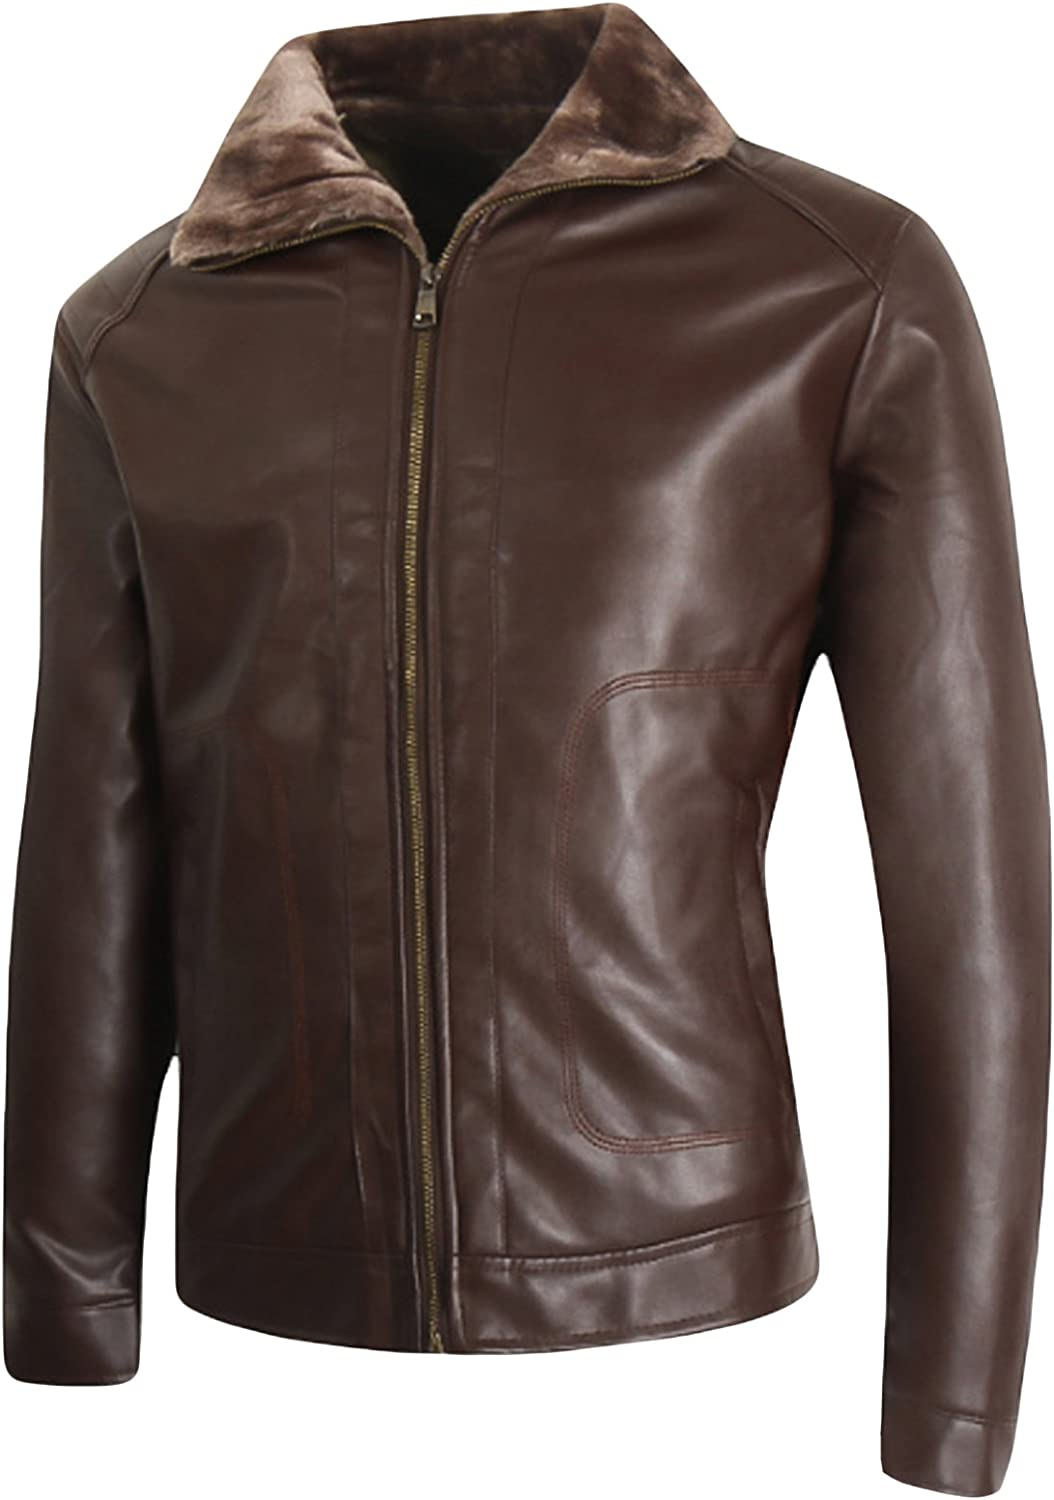 Letuwj Mens Thickened Jacket Faux Leather Coat with Stand Collar